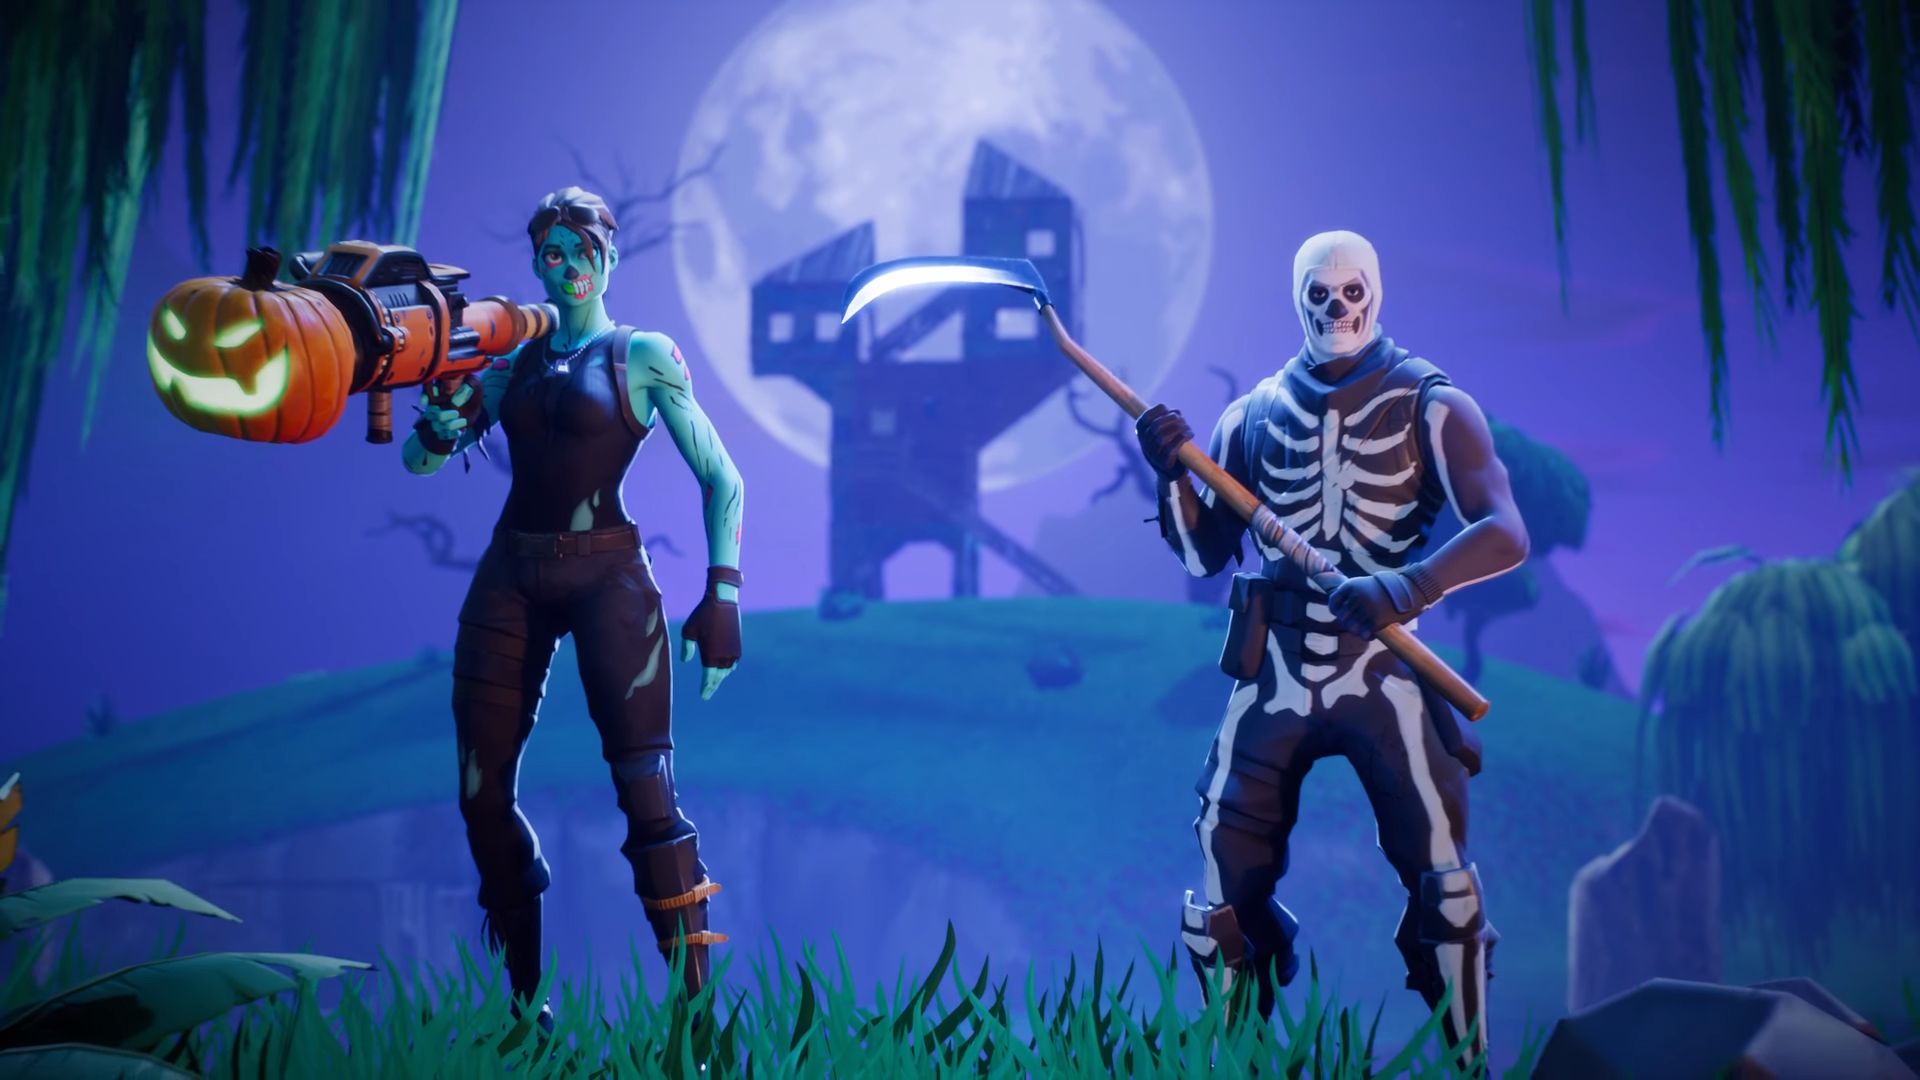 205 Fortnite Hd Wallpapers Background Images Wallpaper Abyss